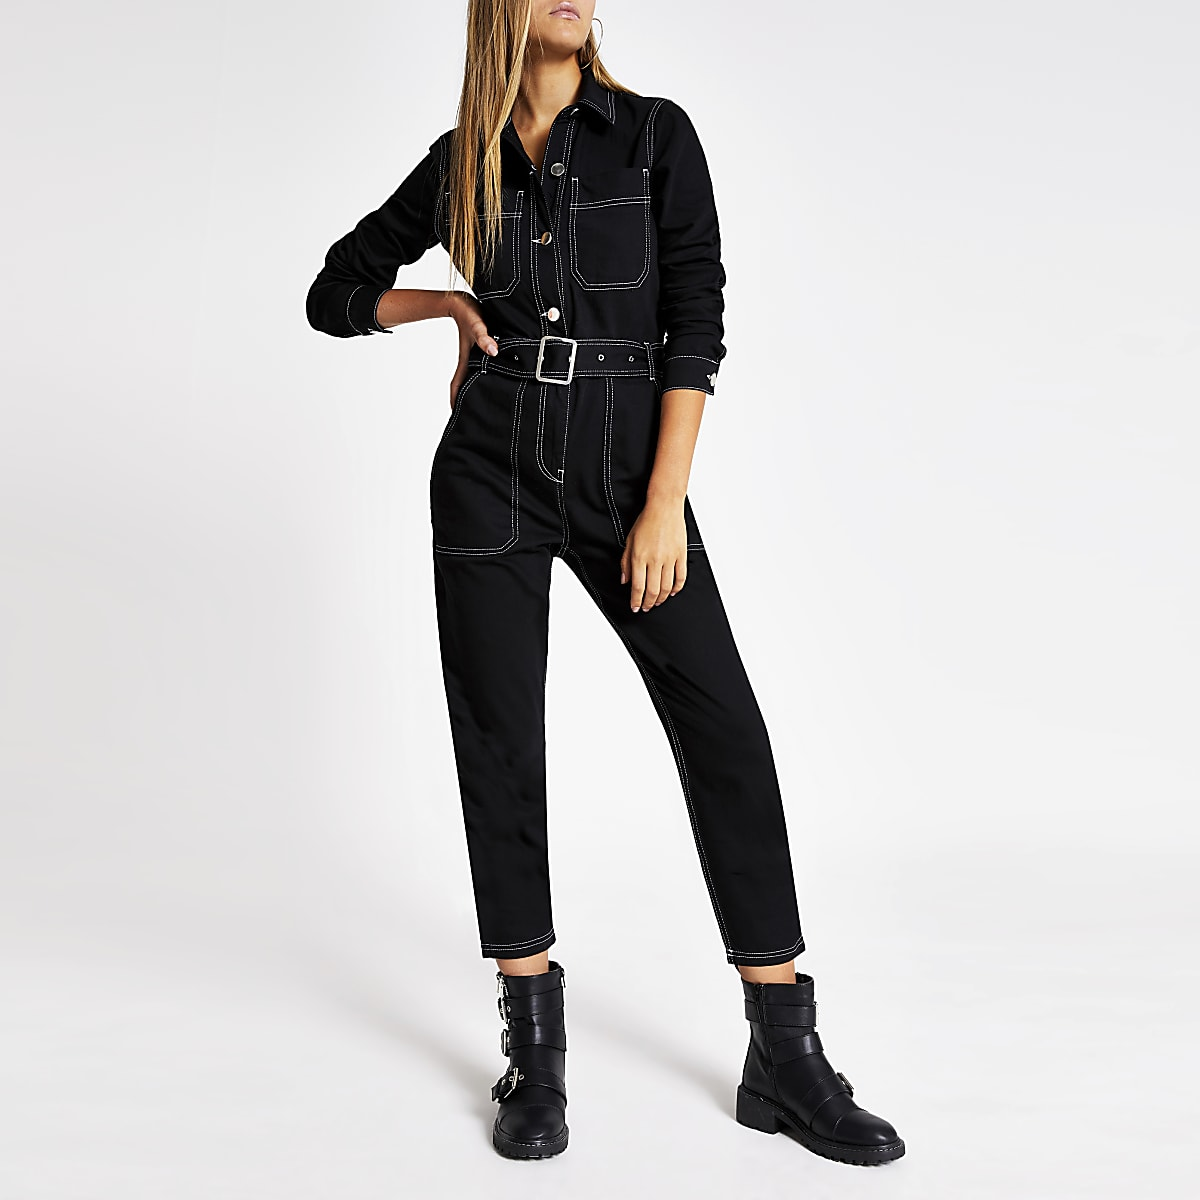 Black contrast stitch denim belted jumpsuit